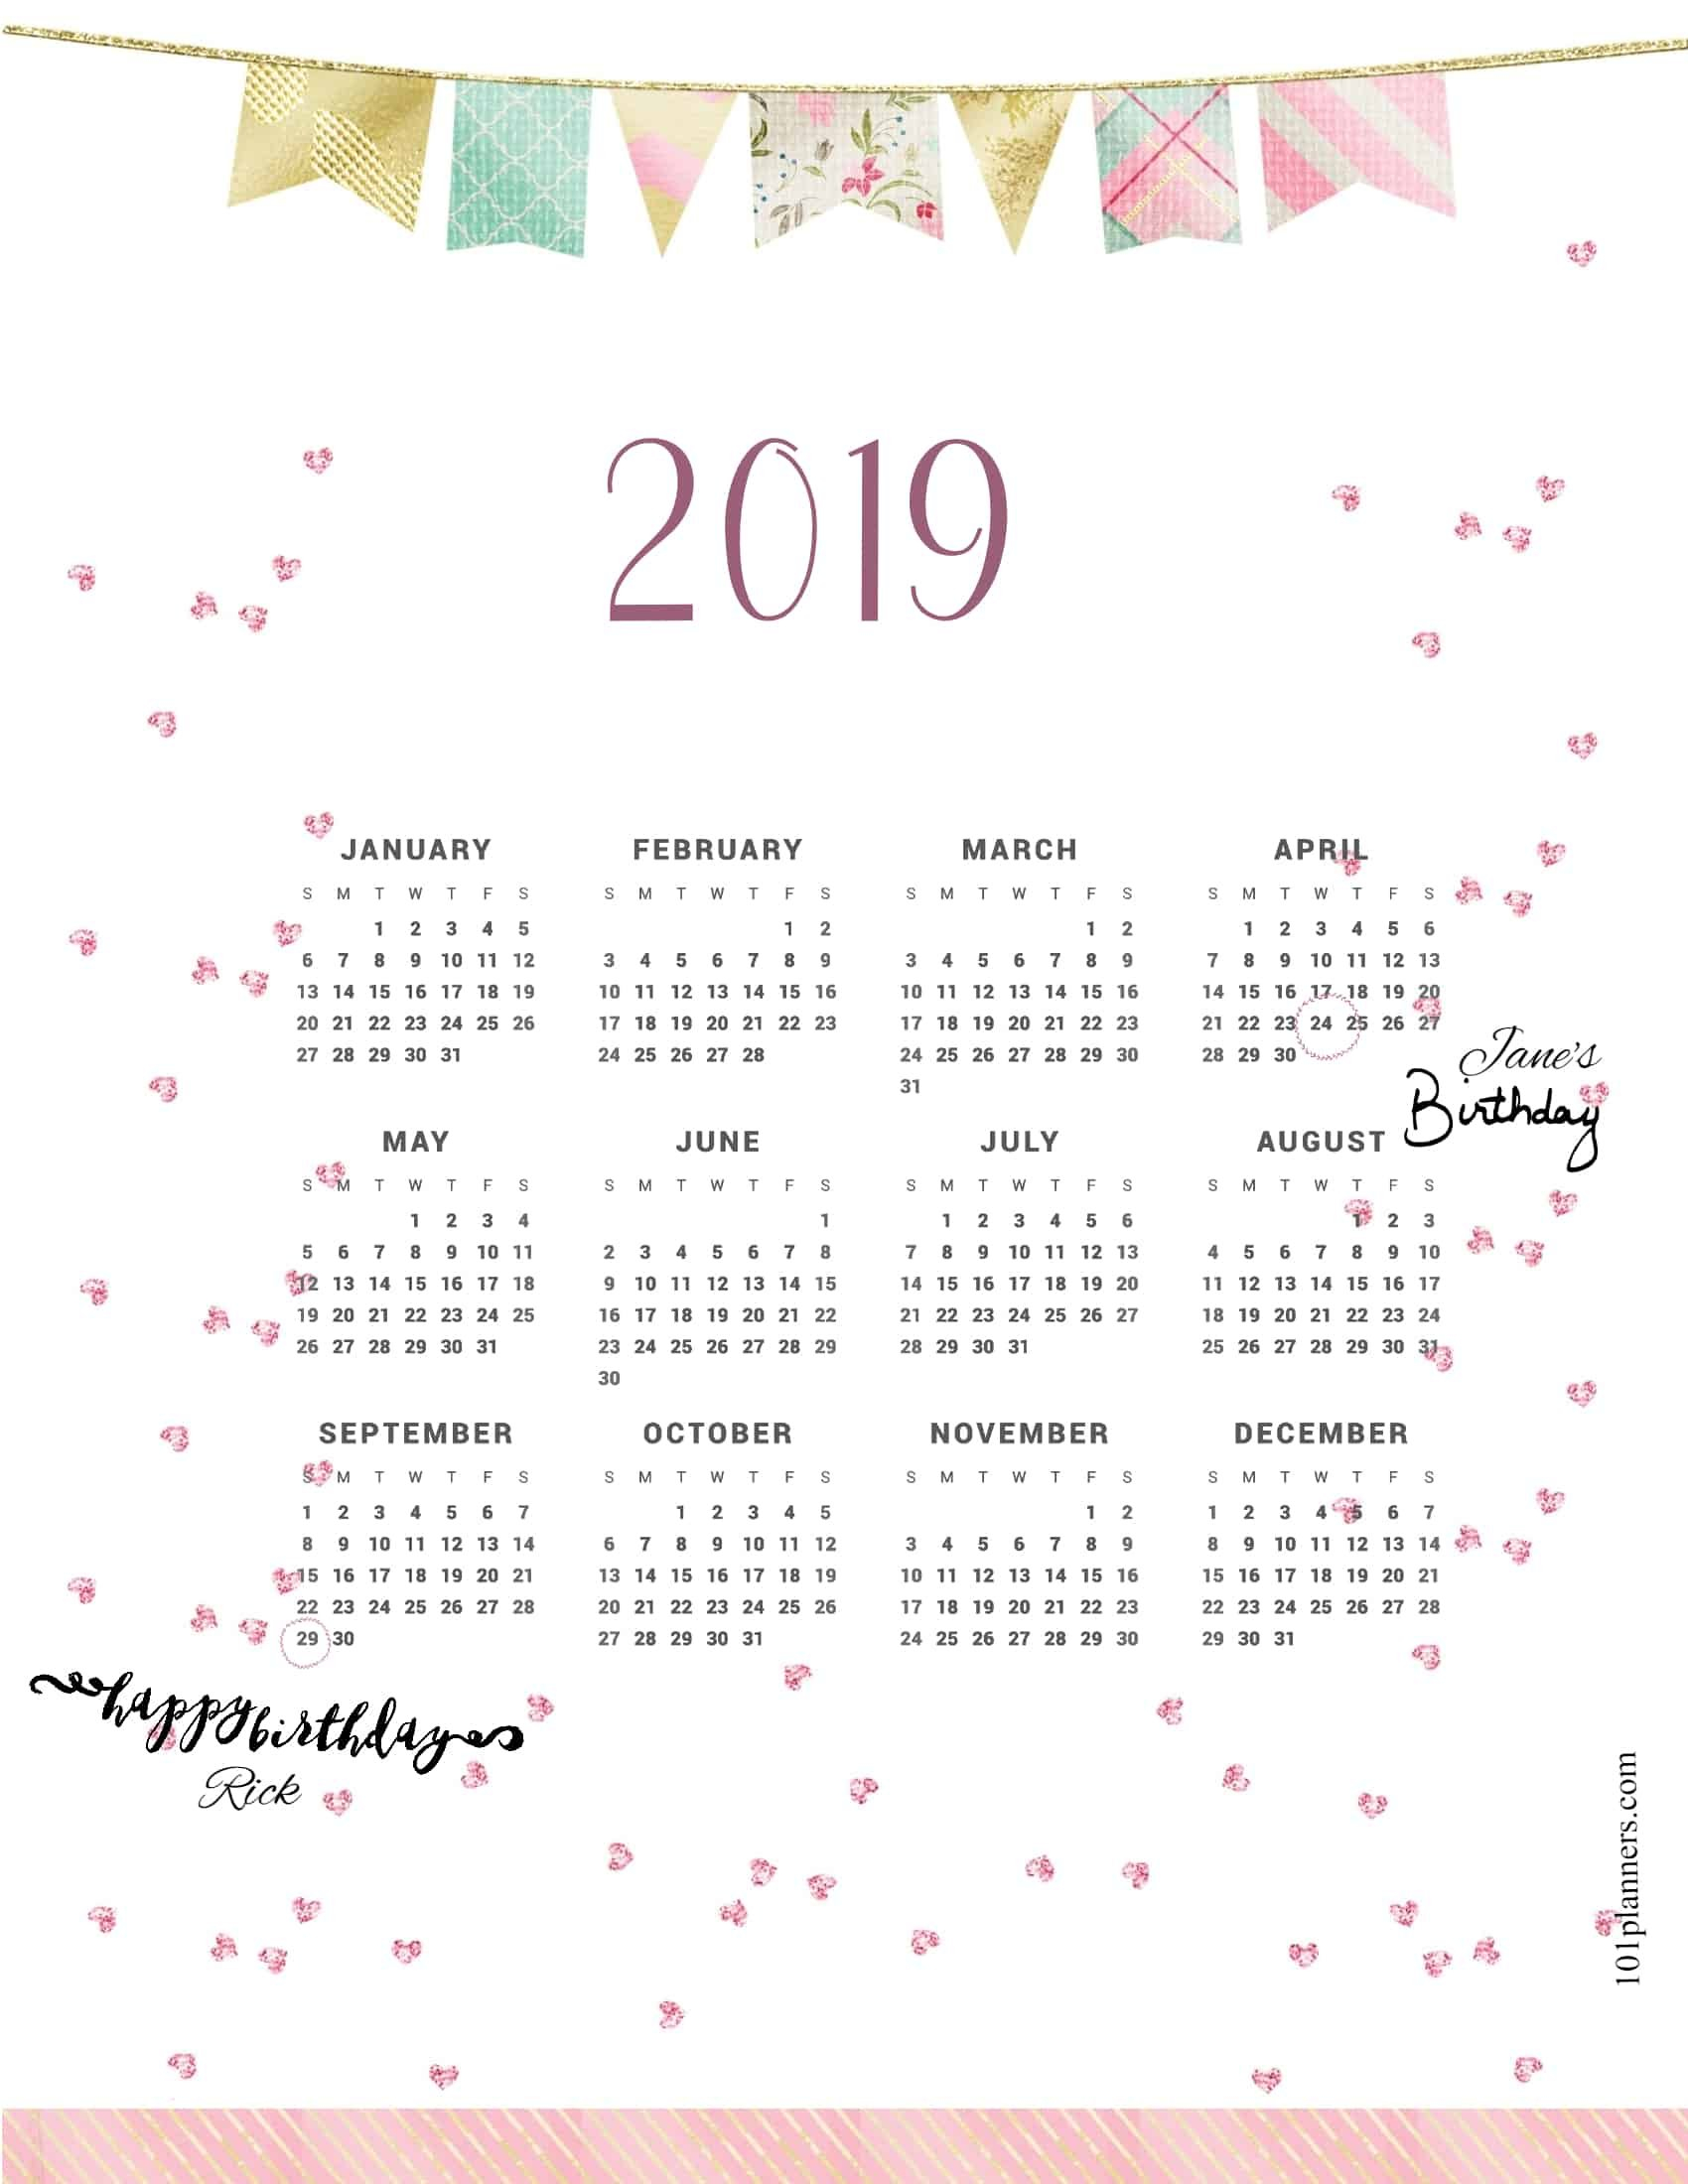 Free Printable 2019 Yearly Calendar At A Glance | 101 Backgrounds Calendar 2019 At A Glance